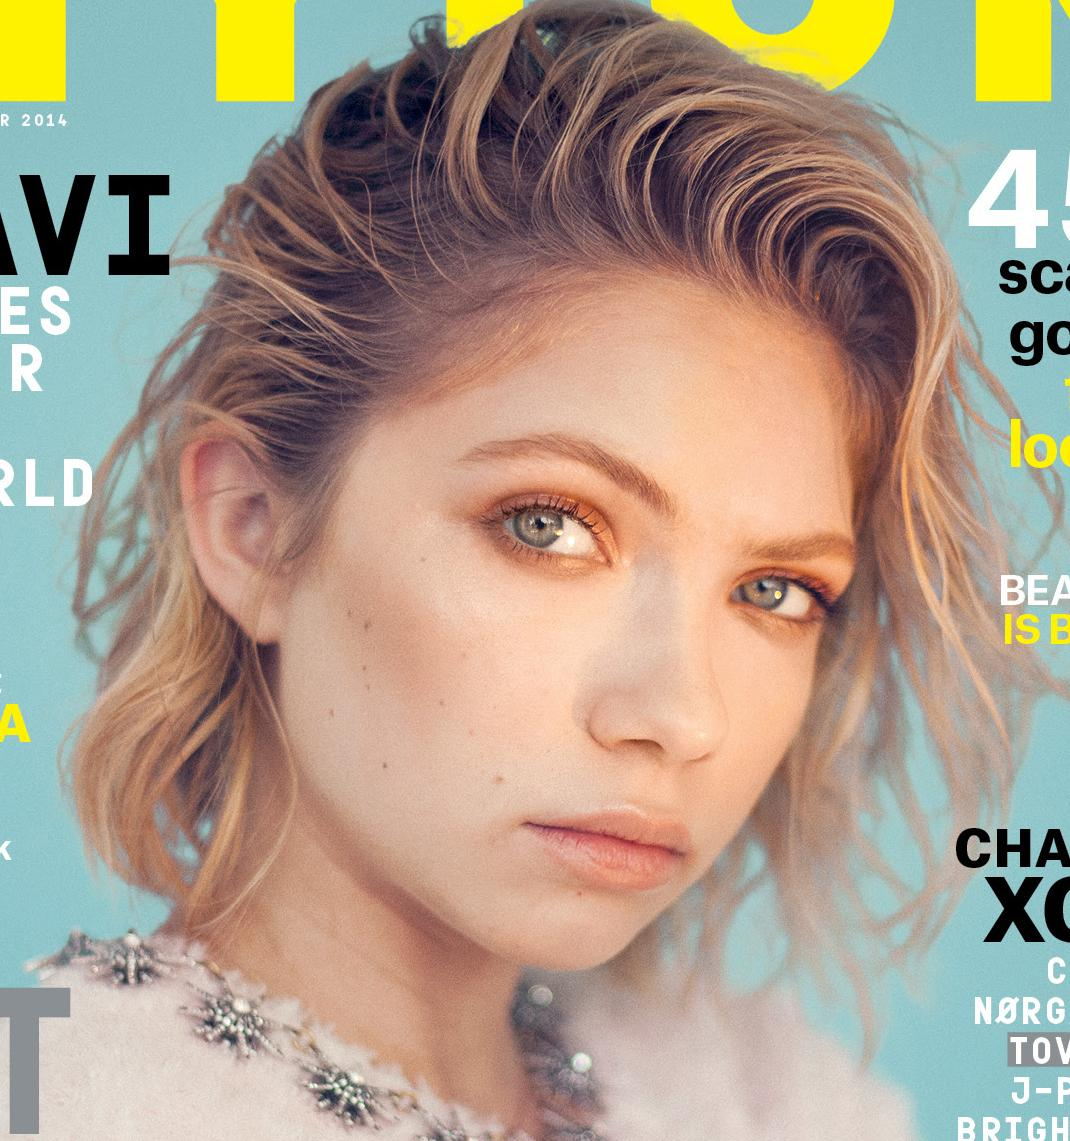 After a tumultuous period, @NylonMag names a new CEO: http://t.co/8x5ZUHYy9L http://t.co/3bwWY0vu00